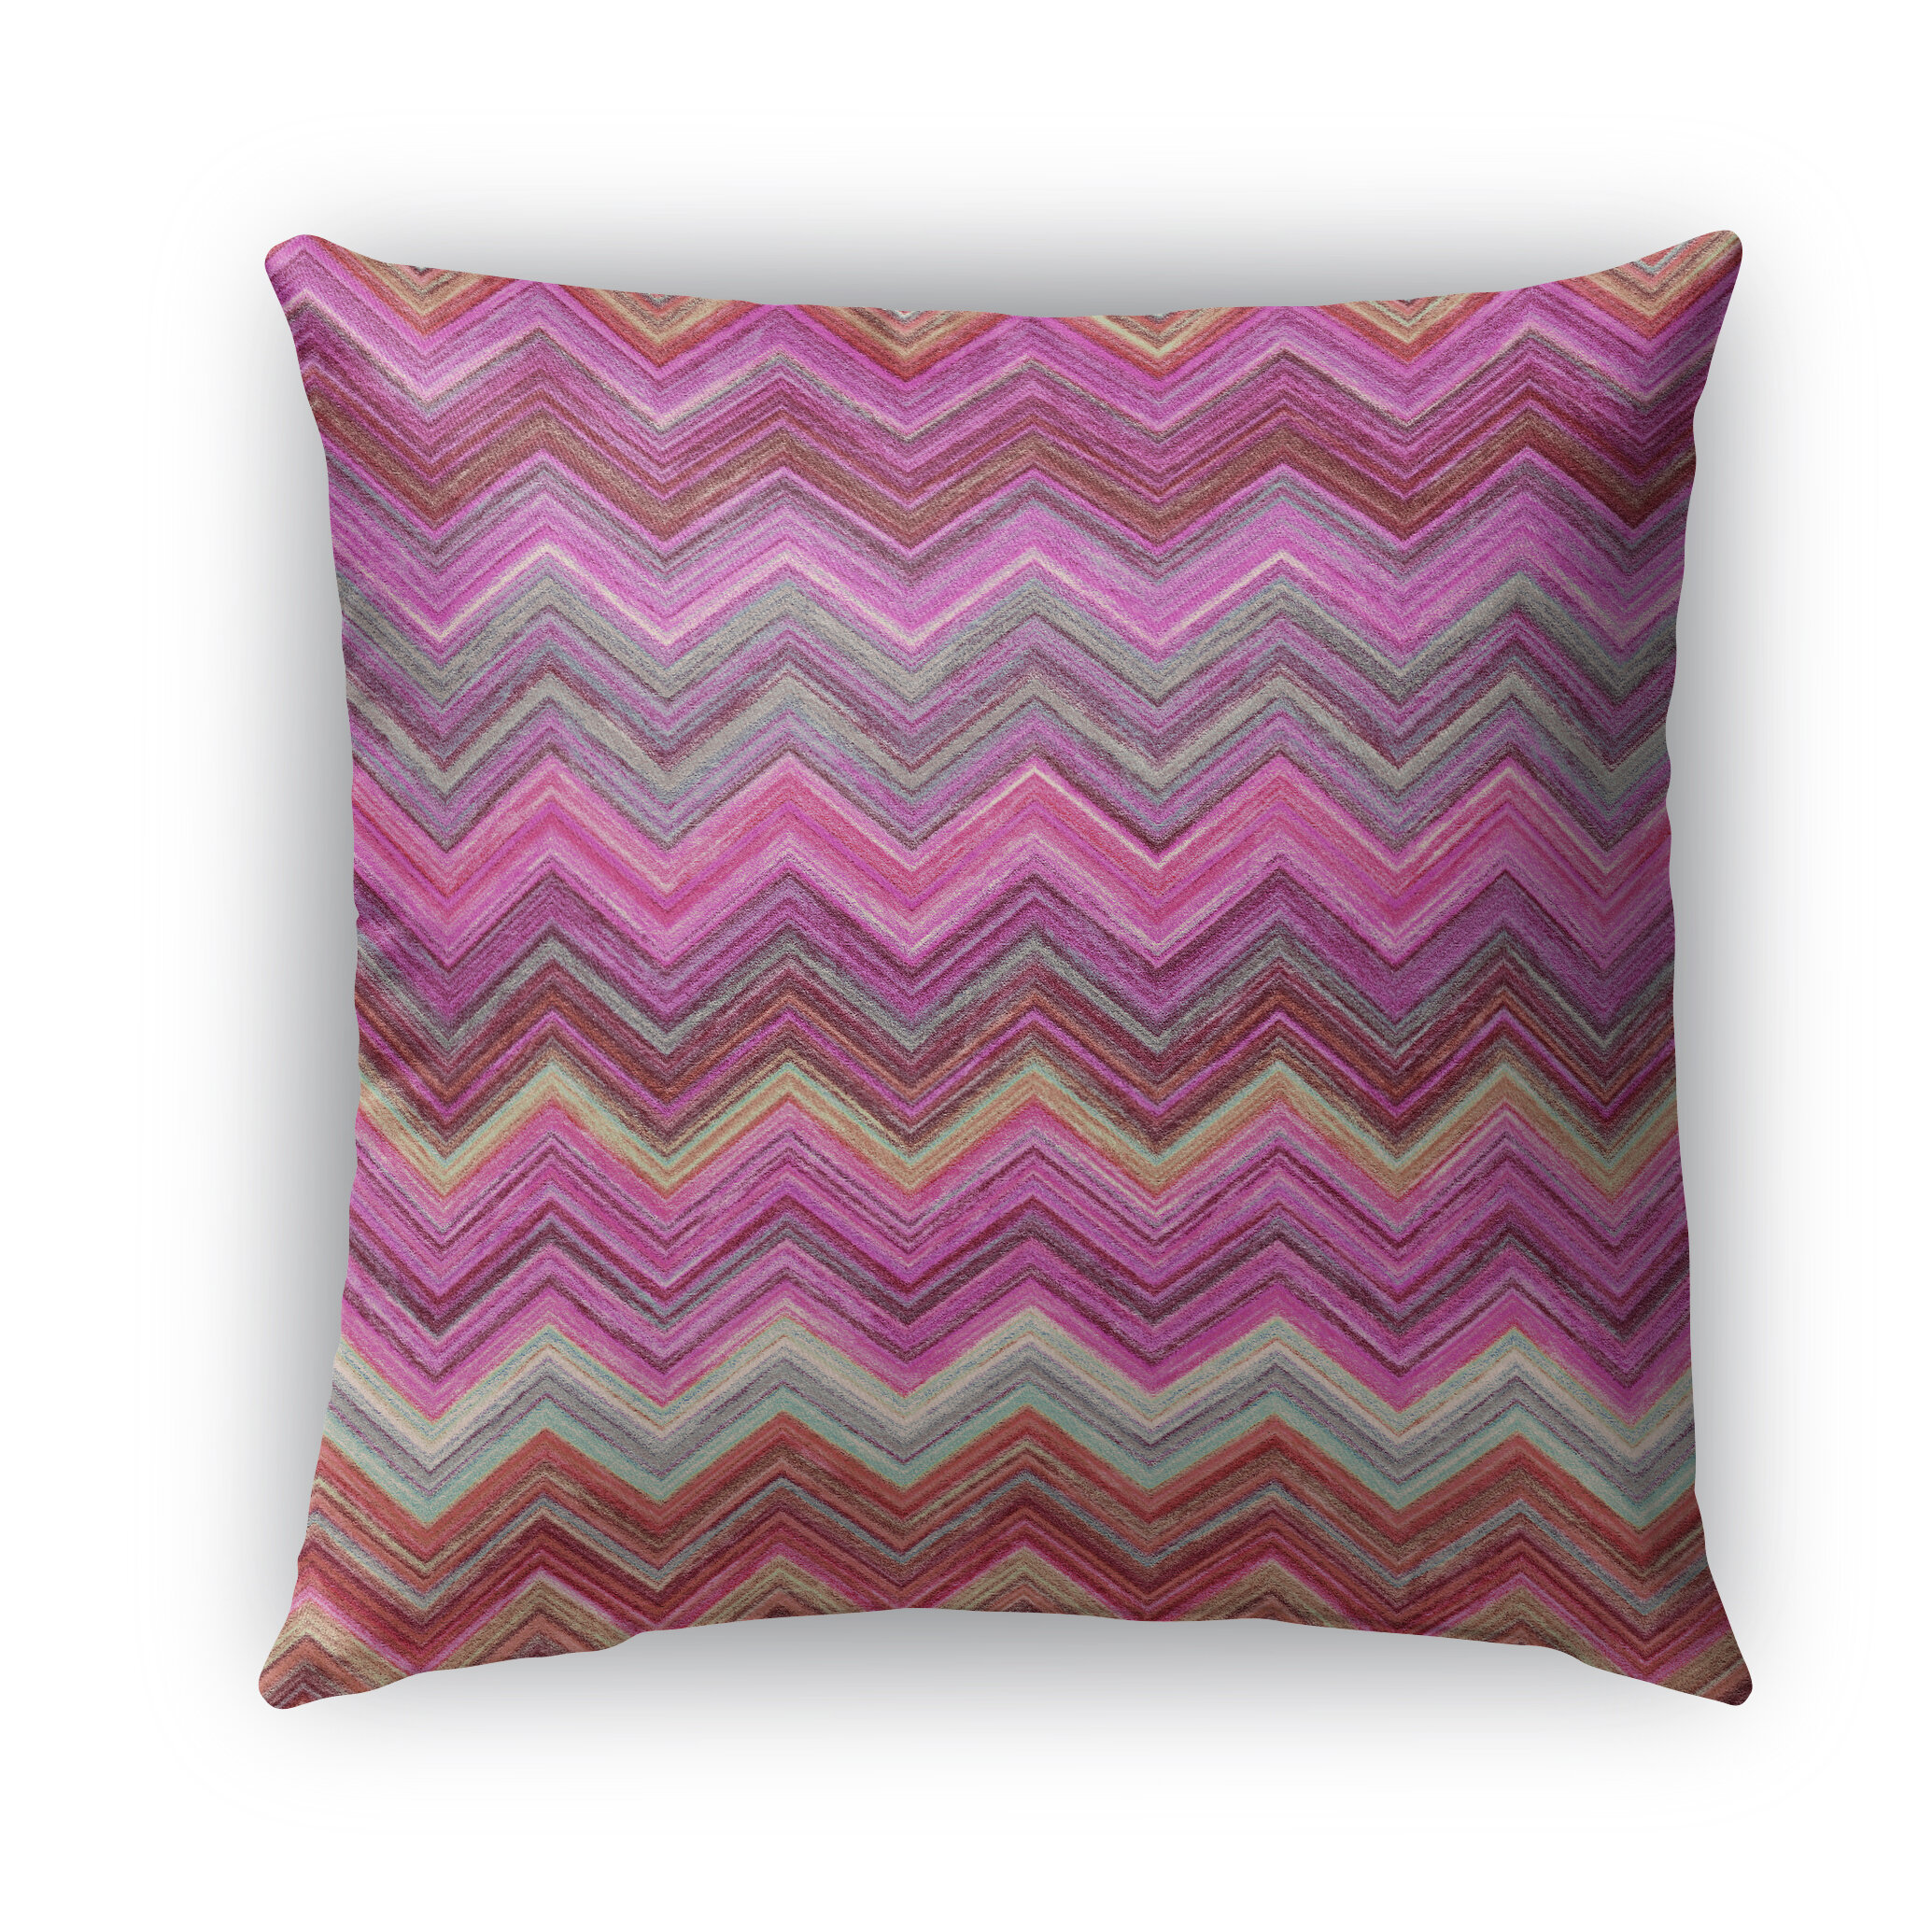 Decorative Pillows Marshalls : Ivy Bronx Marshall Pink Burlap Indoor/Outdoor Throw Pillow Wayfair